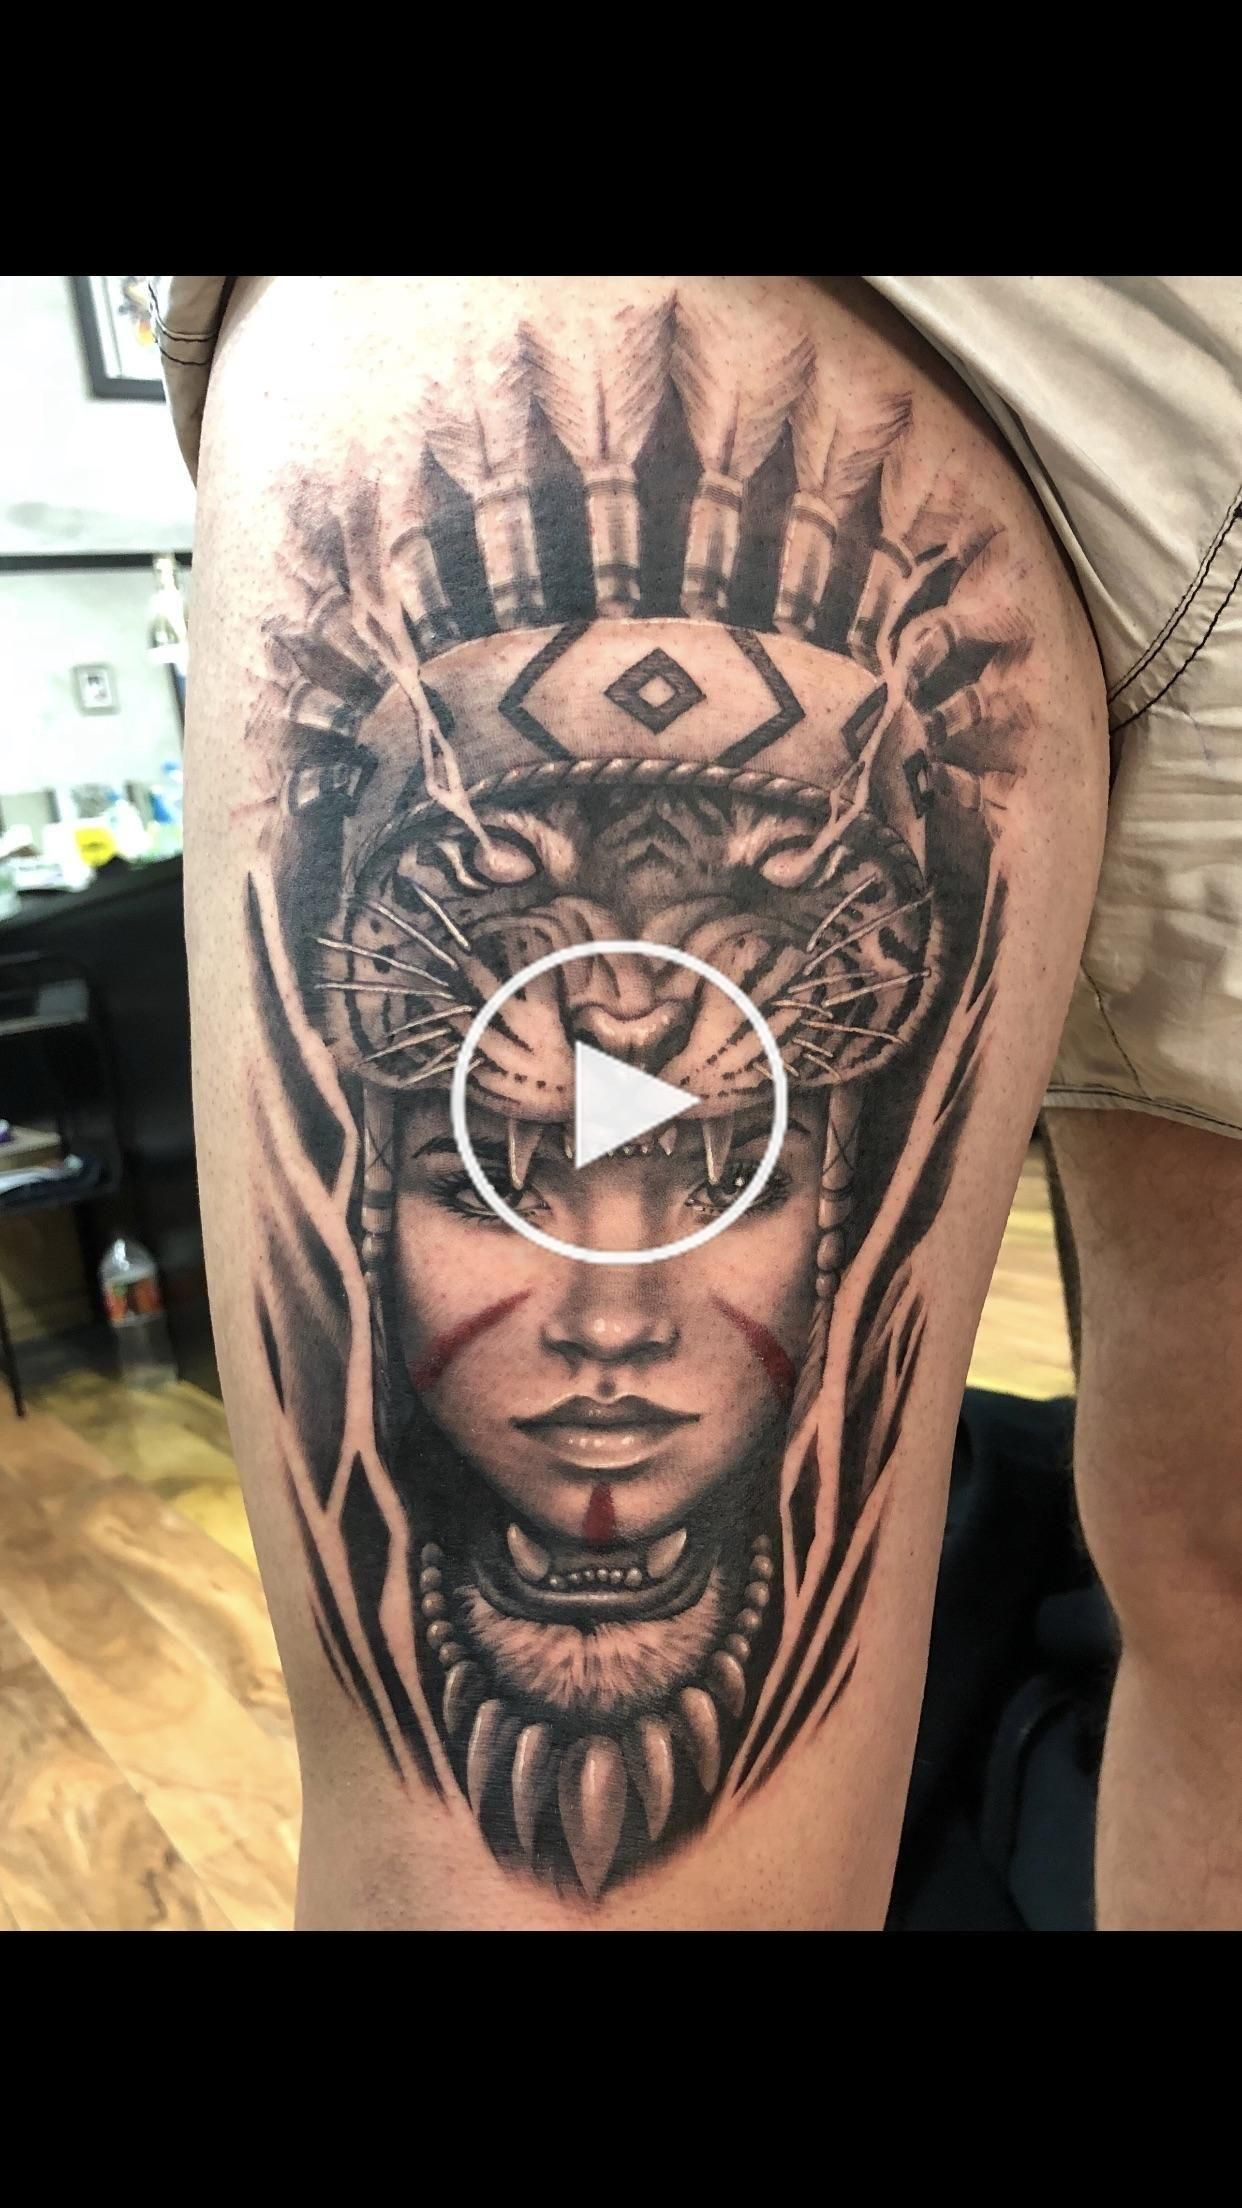 Iain Mclellan, Reverence tattoo, Melbourne Australia. Native American